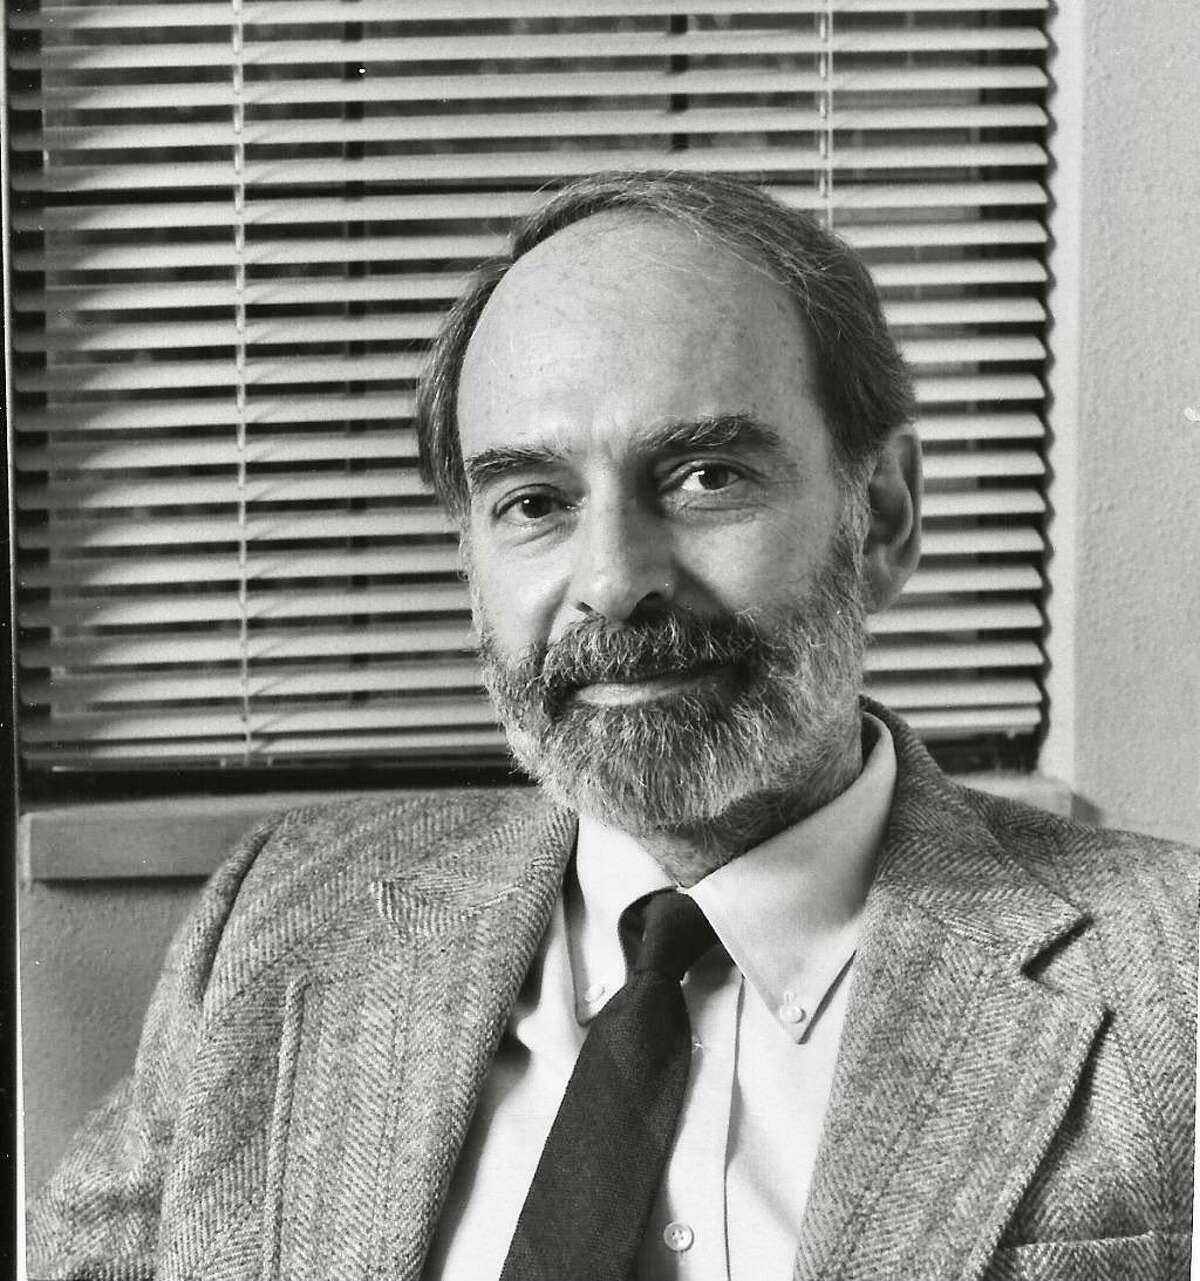 Chandler Davidson, a leading voting rights scholar and a co-founder of Rice University's sociology department, died April 10 of massive brain inflammation at his Houston home. He was 84 years old.